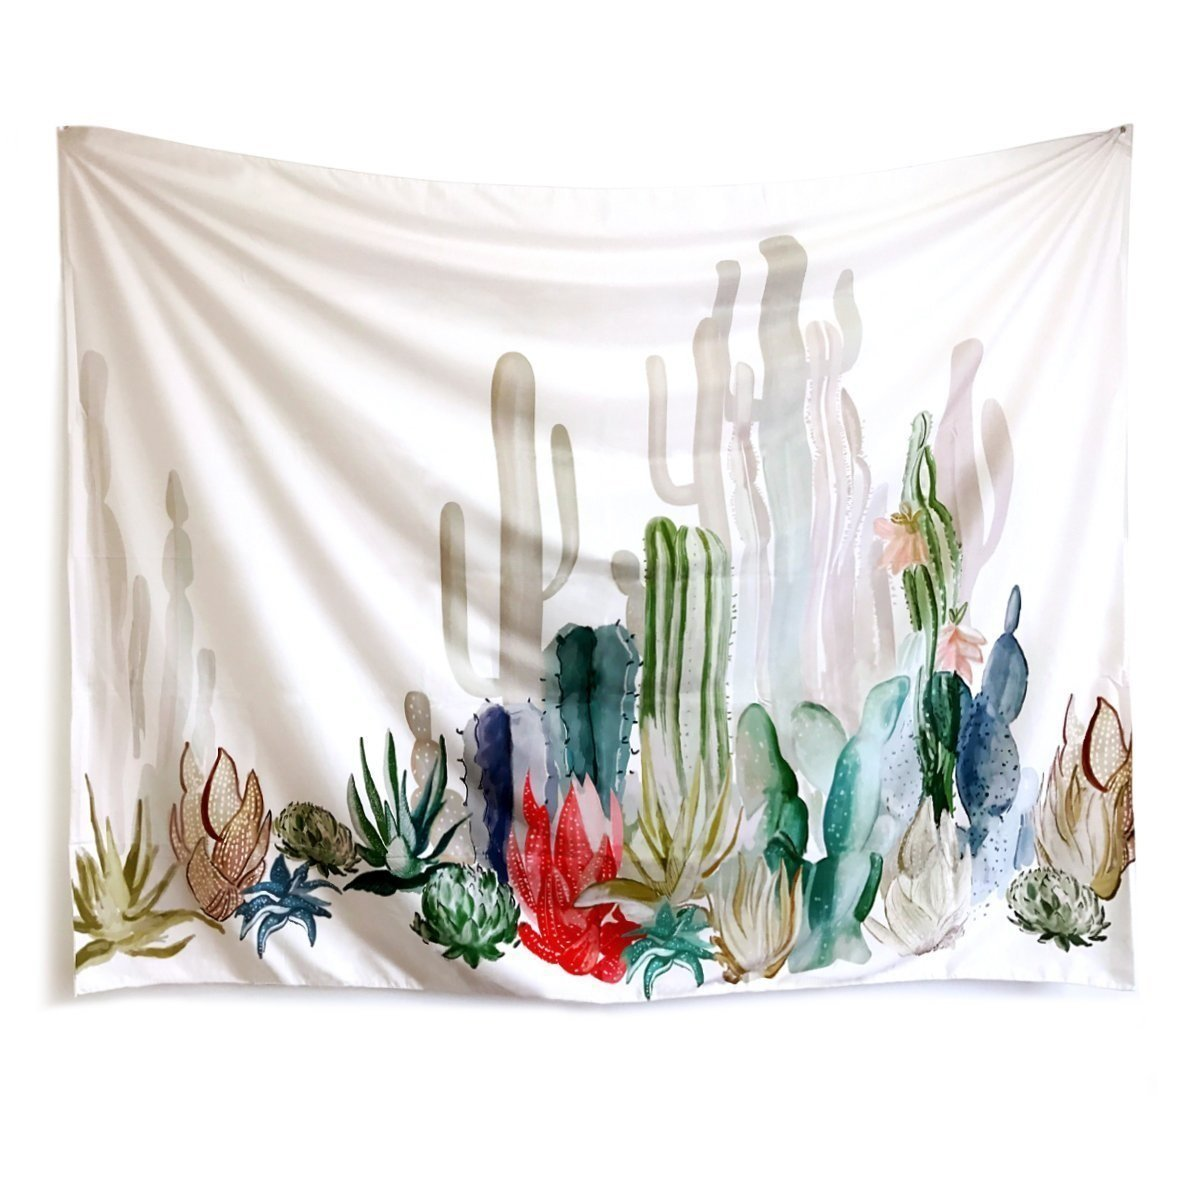 WINLIFE Cactus Landscape Wall Tapestry Fabric Wall Arts Home Decor 58